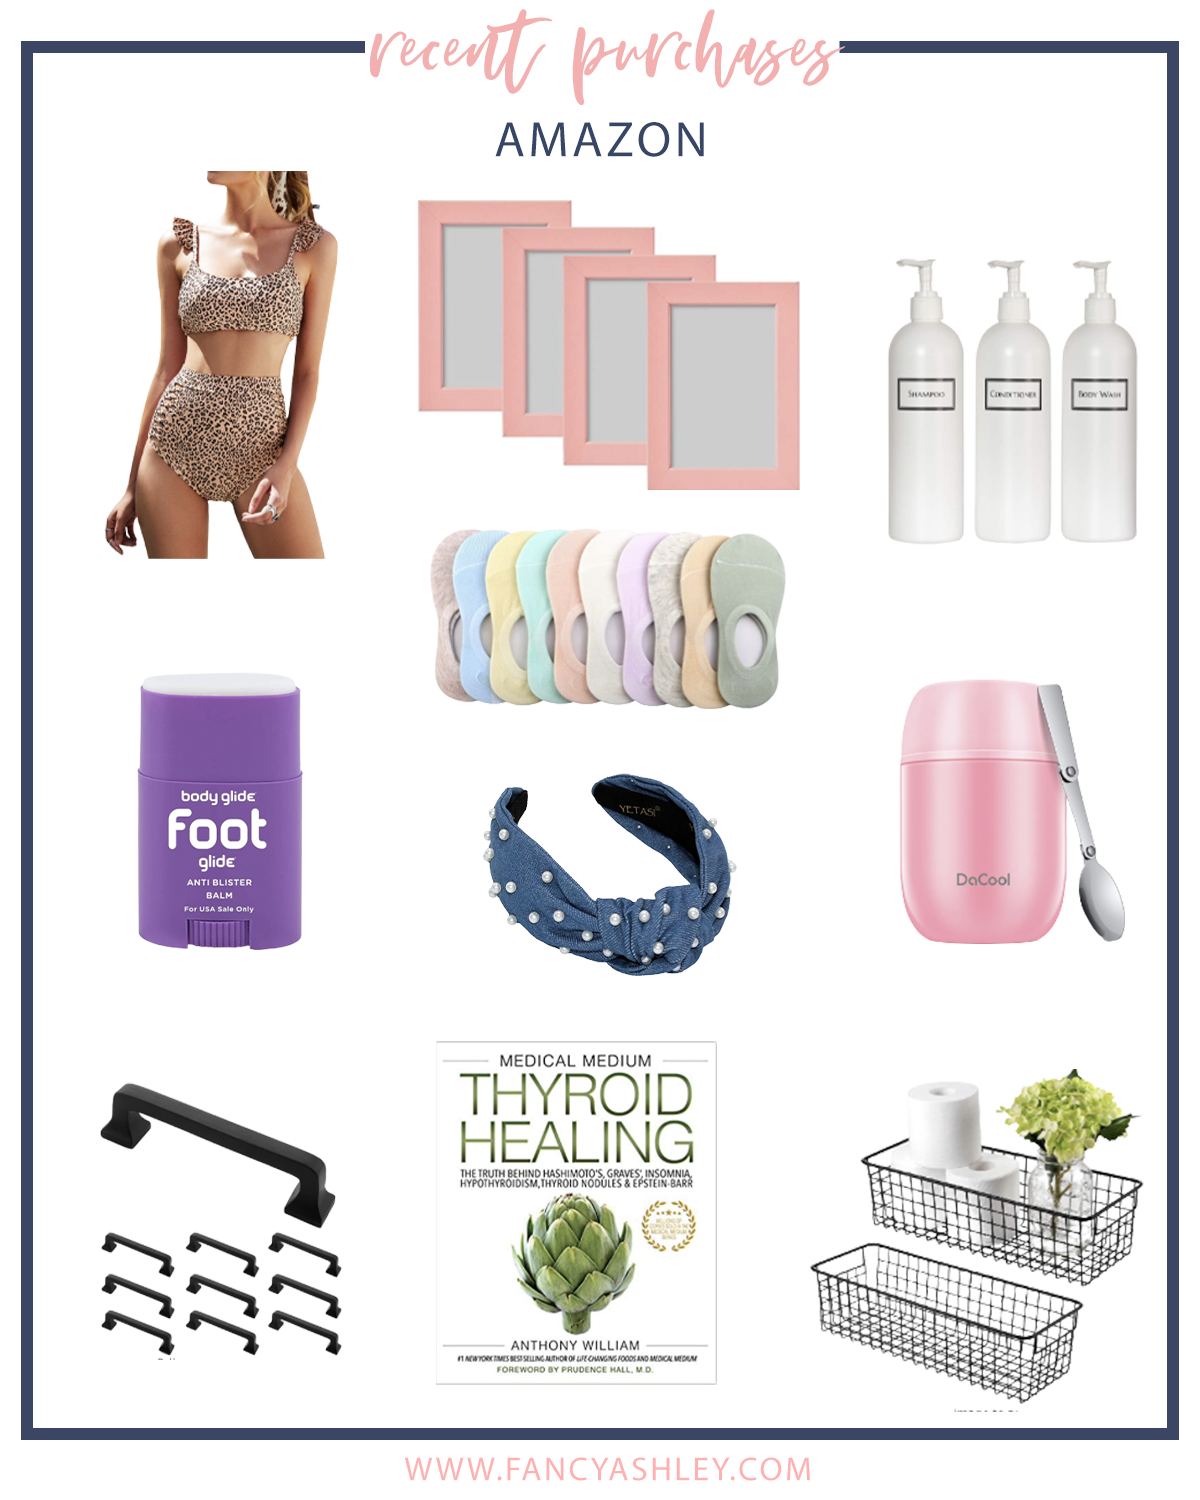 Recent Amazon Purchases by popular Houston fashion blog, The House of Fancy: collage image of a leopard print two piece swimsuit, pink picture frames, pearl knot headbands, drawer pulls, thyroid healing books, black metal wire baskets, travel spoon, crew socks, shampoo bottle set, foot glide stick, and insulated lunch container.